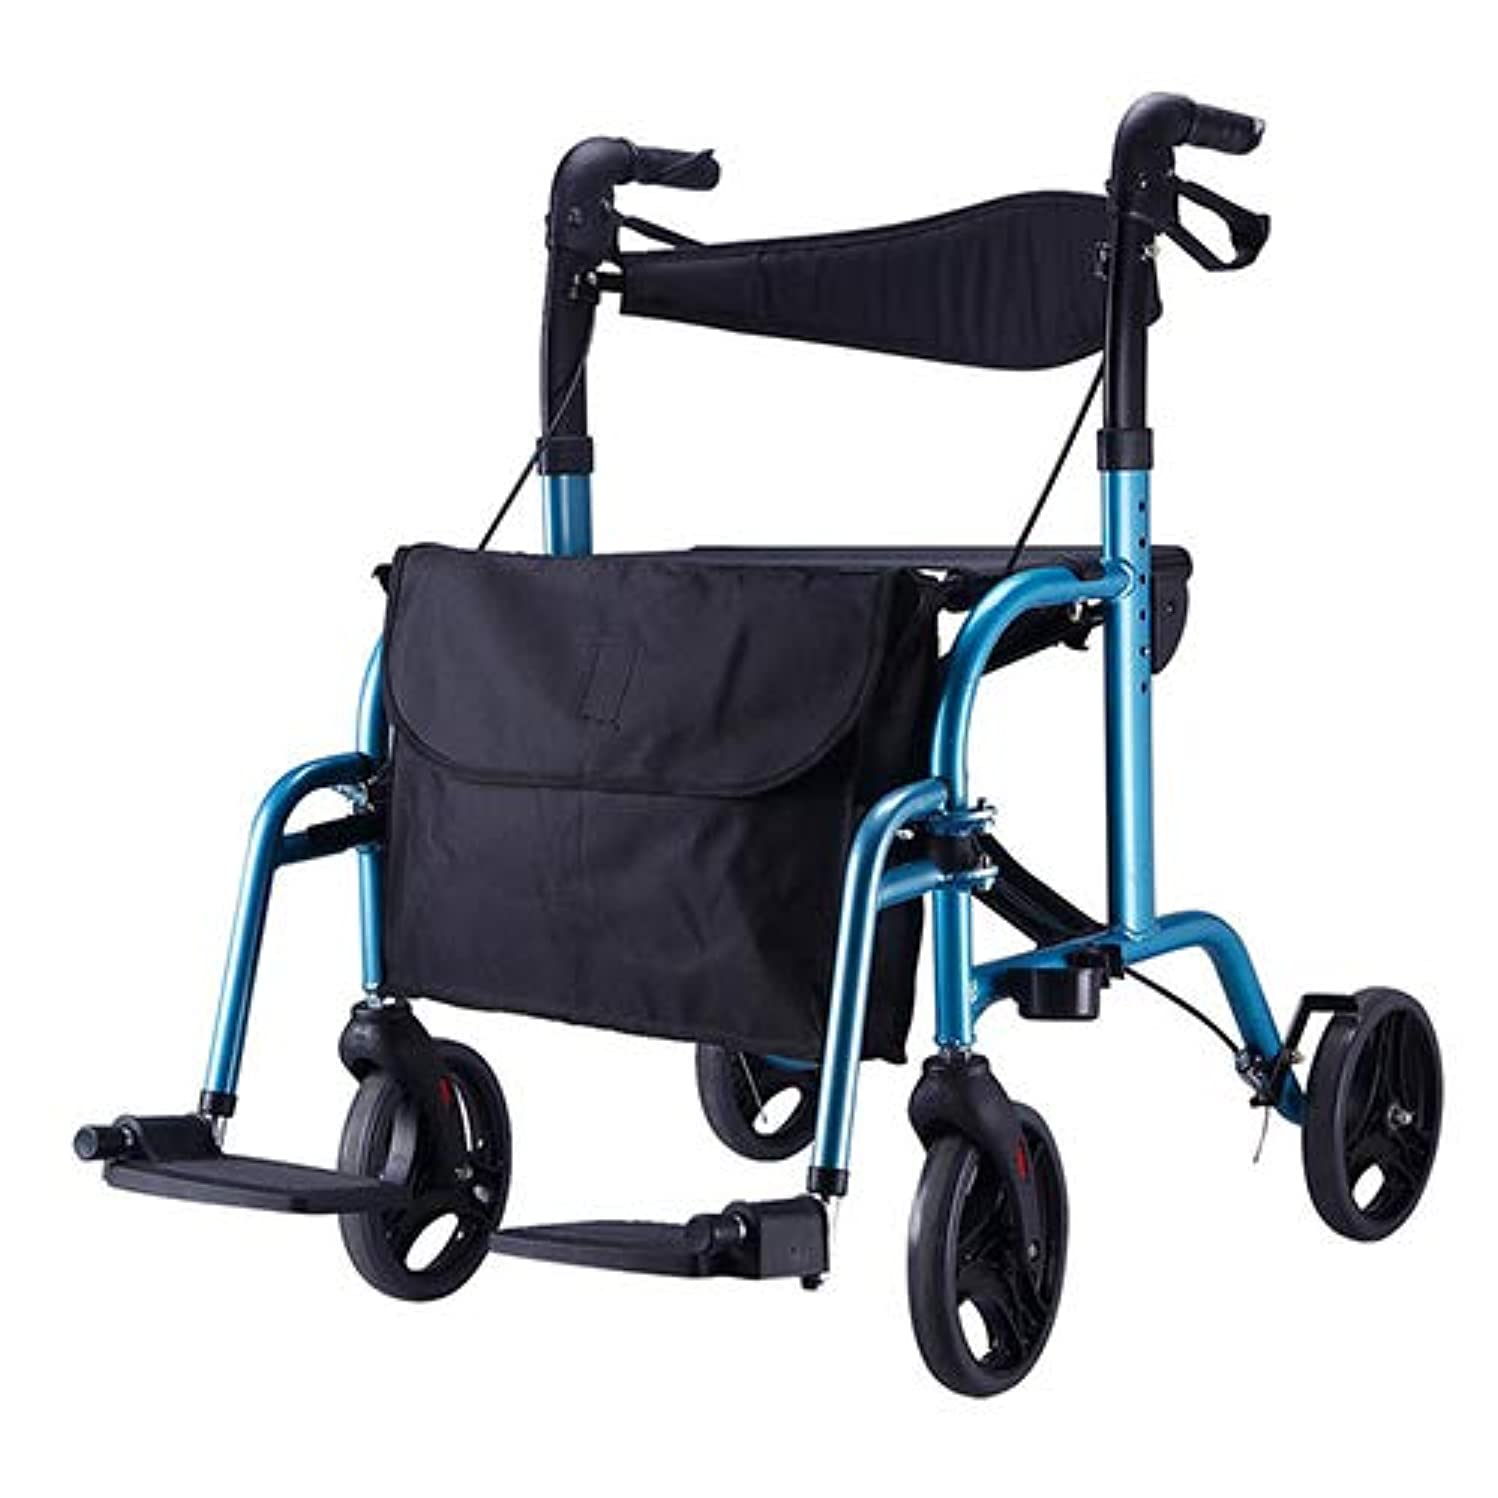 HYRL Aluminum Alloy Walker, Senior Four-Wheel Drive Wheelchairs,Elderly People with Disabilities Shopping Carts, Elderly Lightweight Scooter with Brake